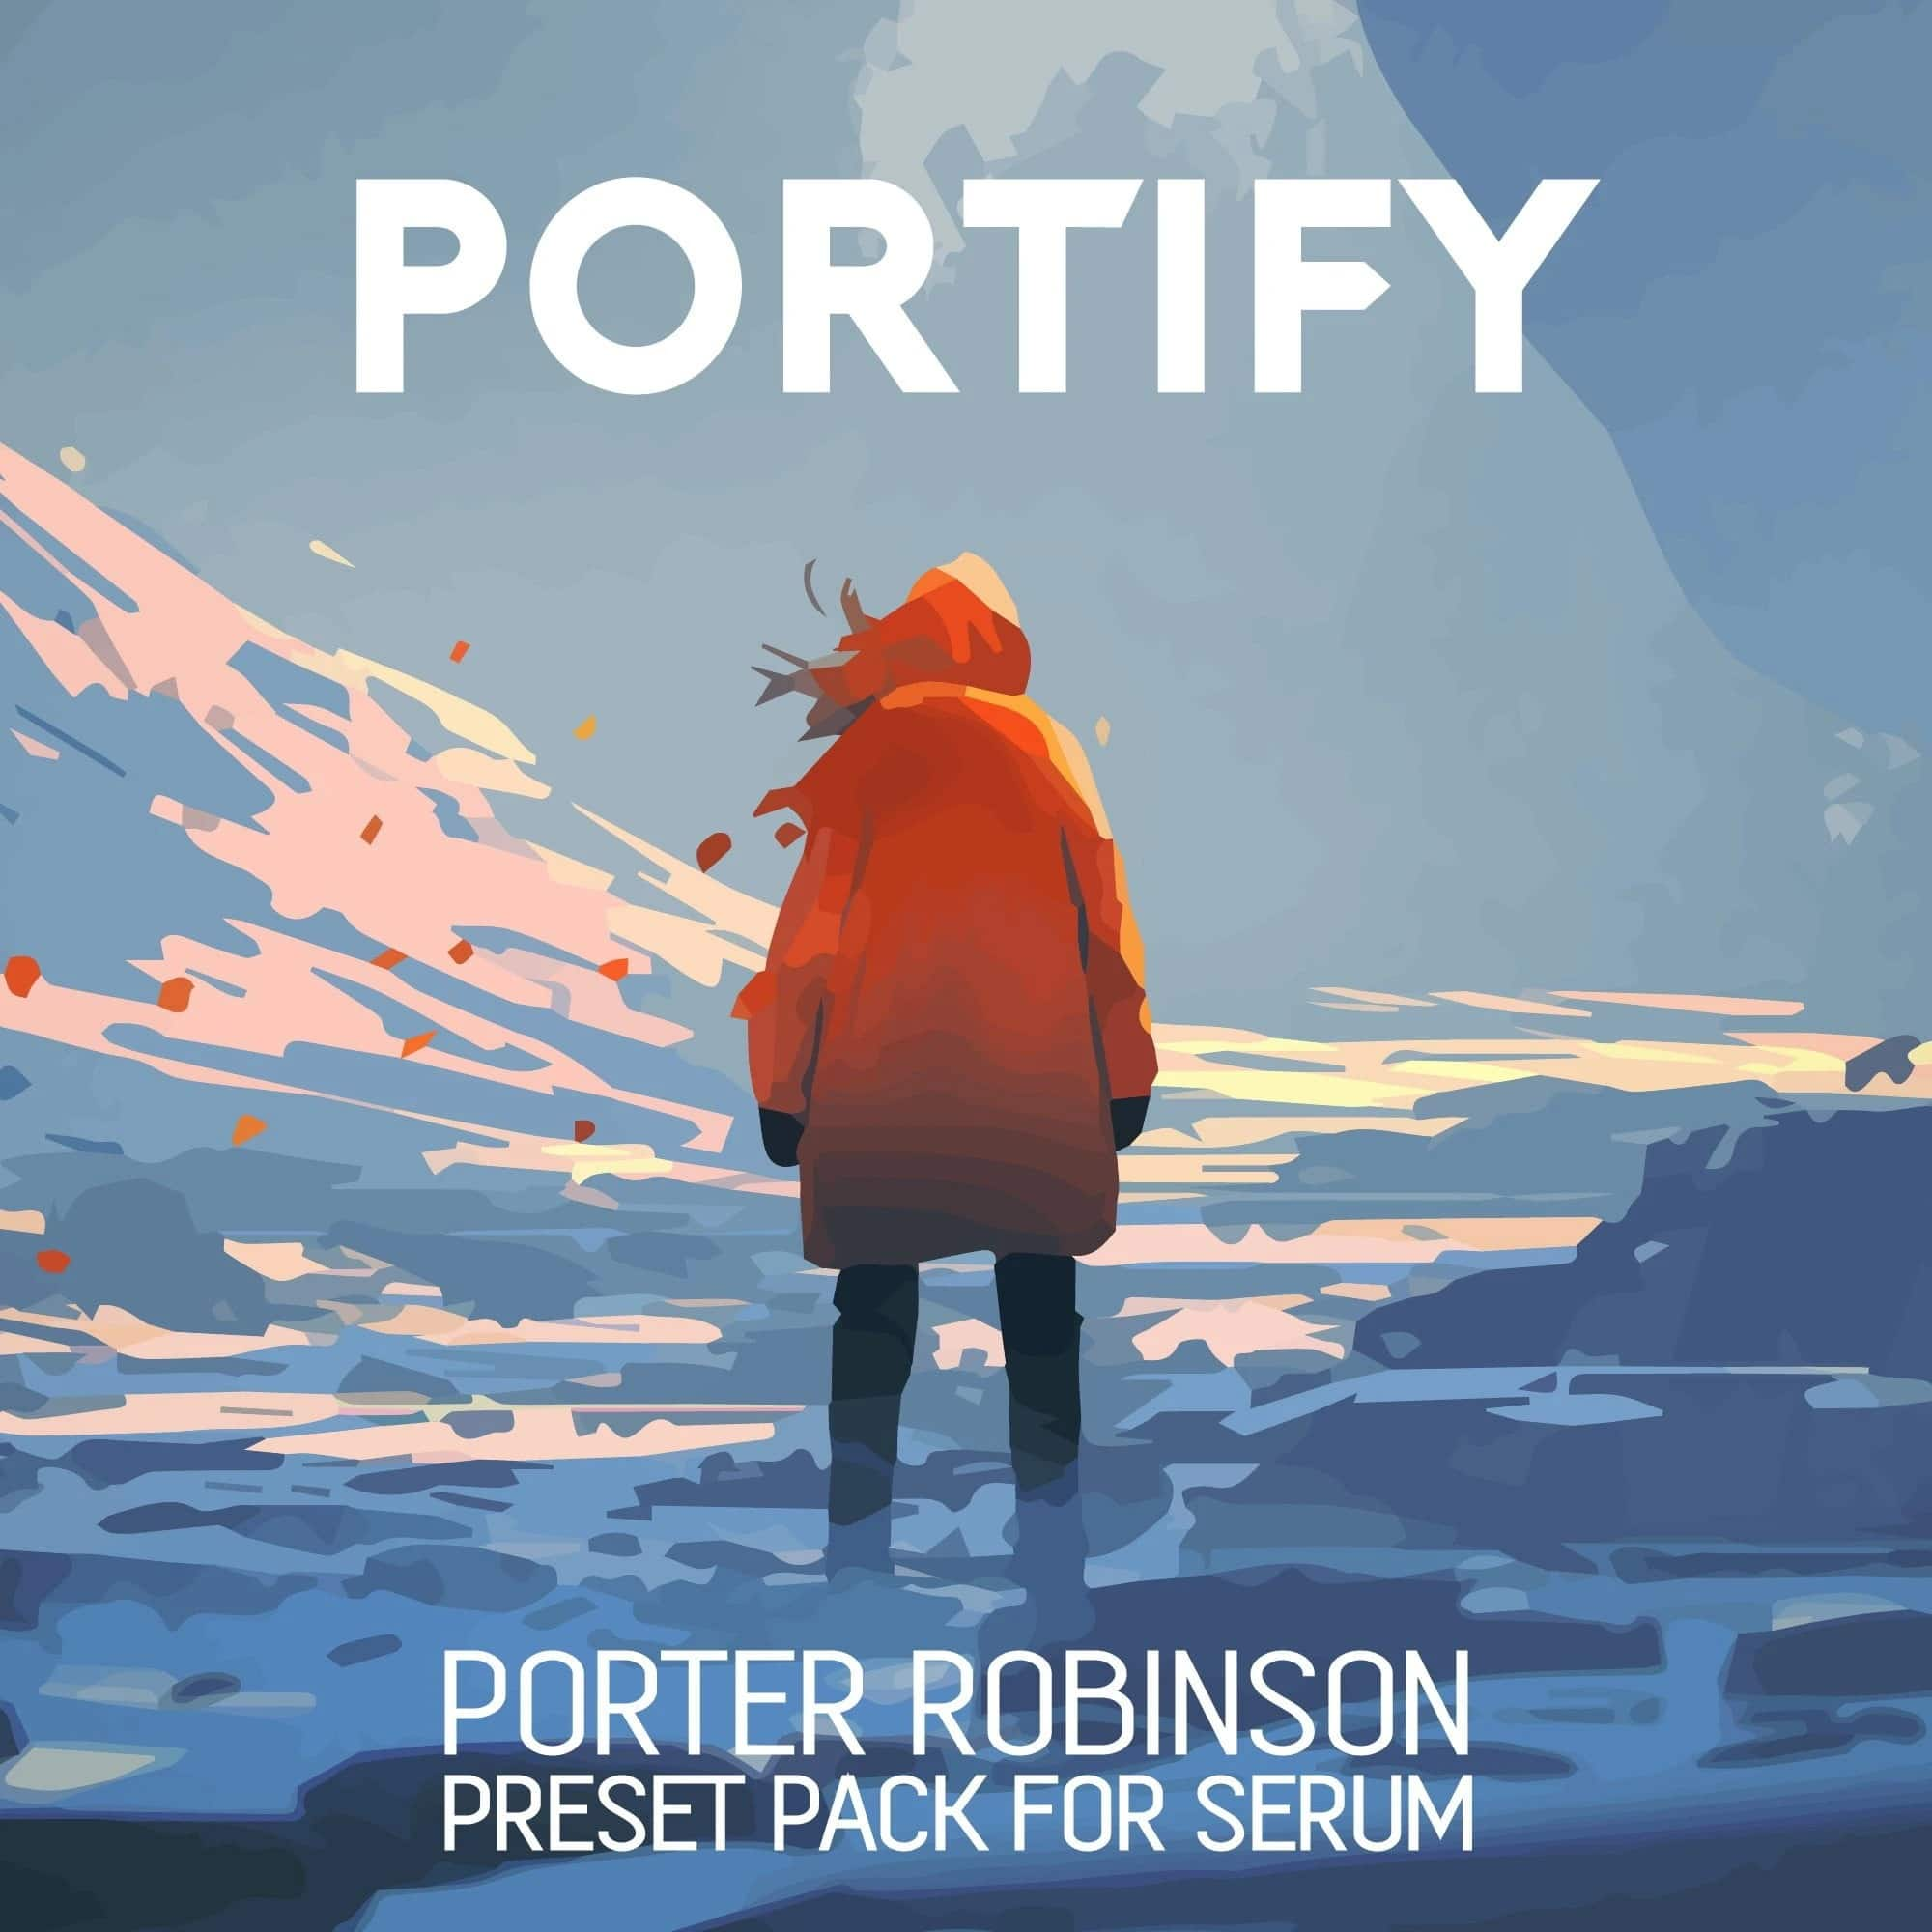 Oversampled - PORTIFY - Serum Presets